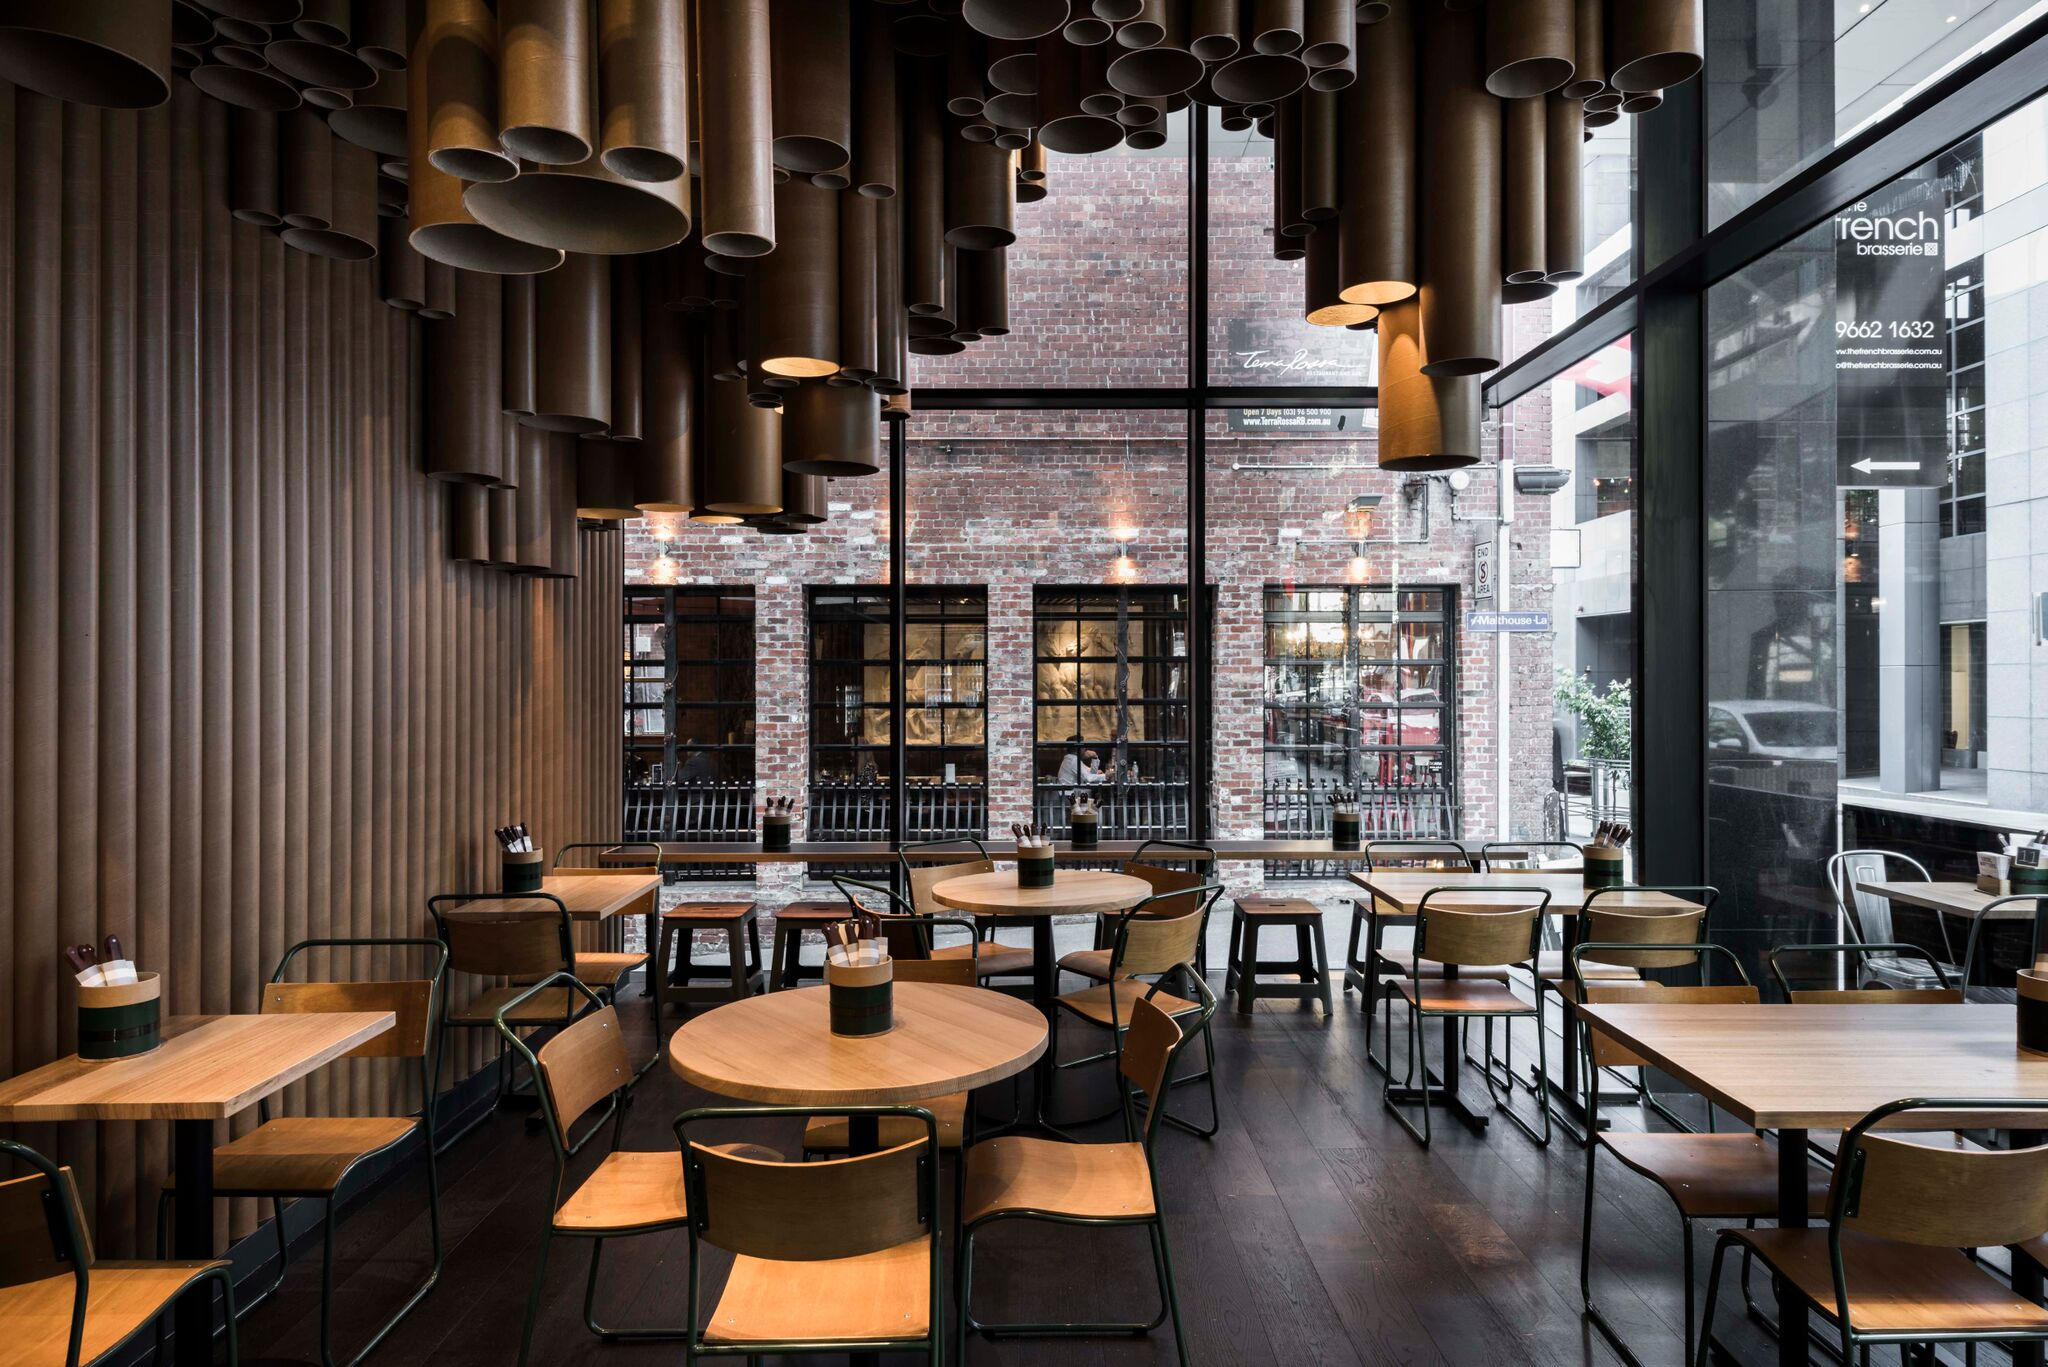 Flinders Lane - Techne Architects - Australian Architecture and Interior Design - Articles & News - The Local Project - Image 3